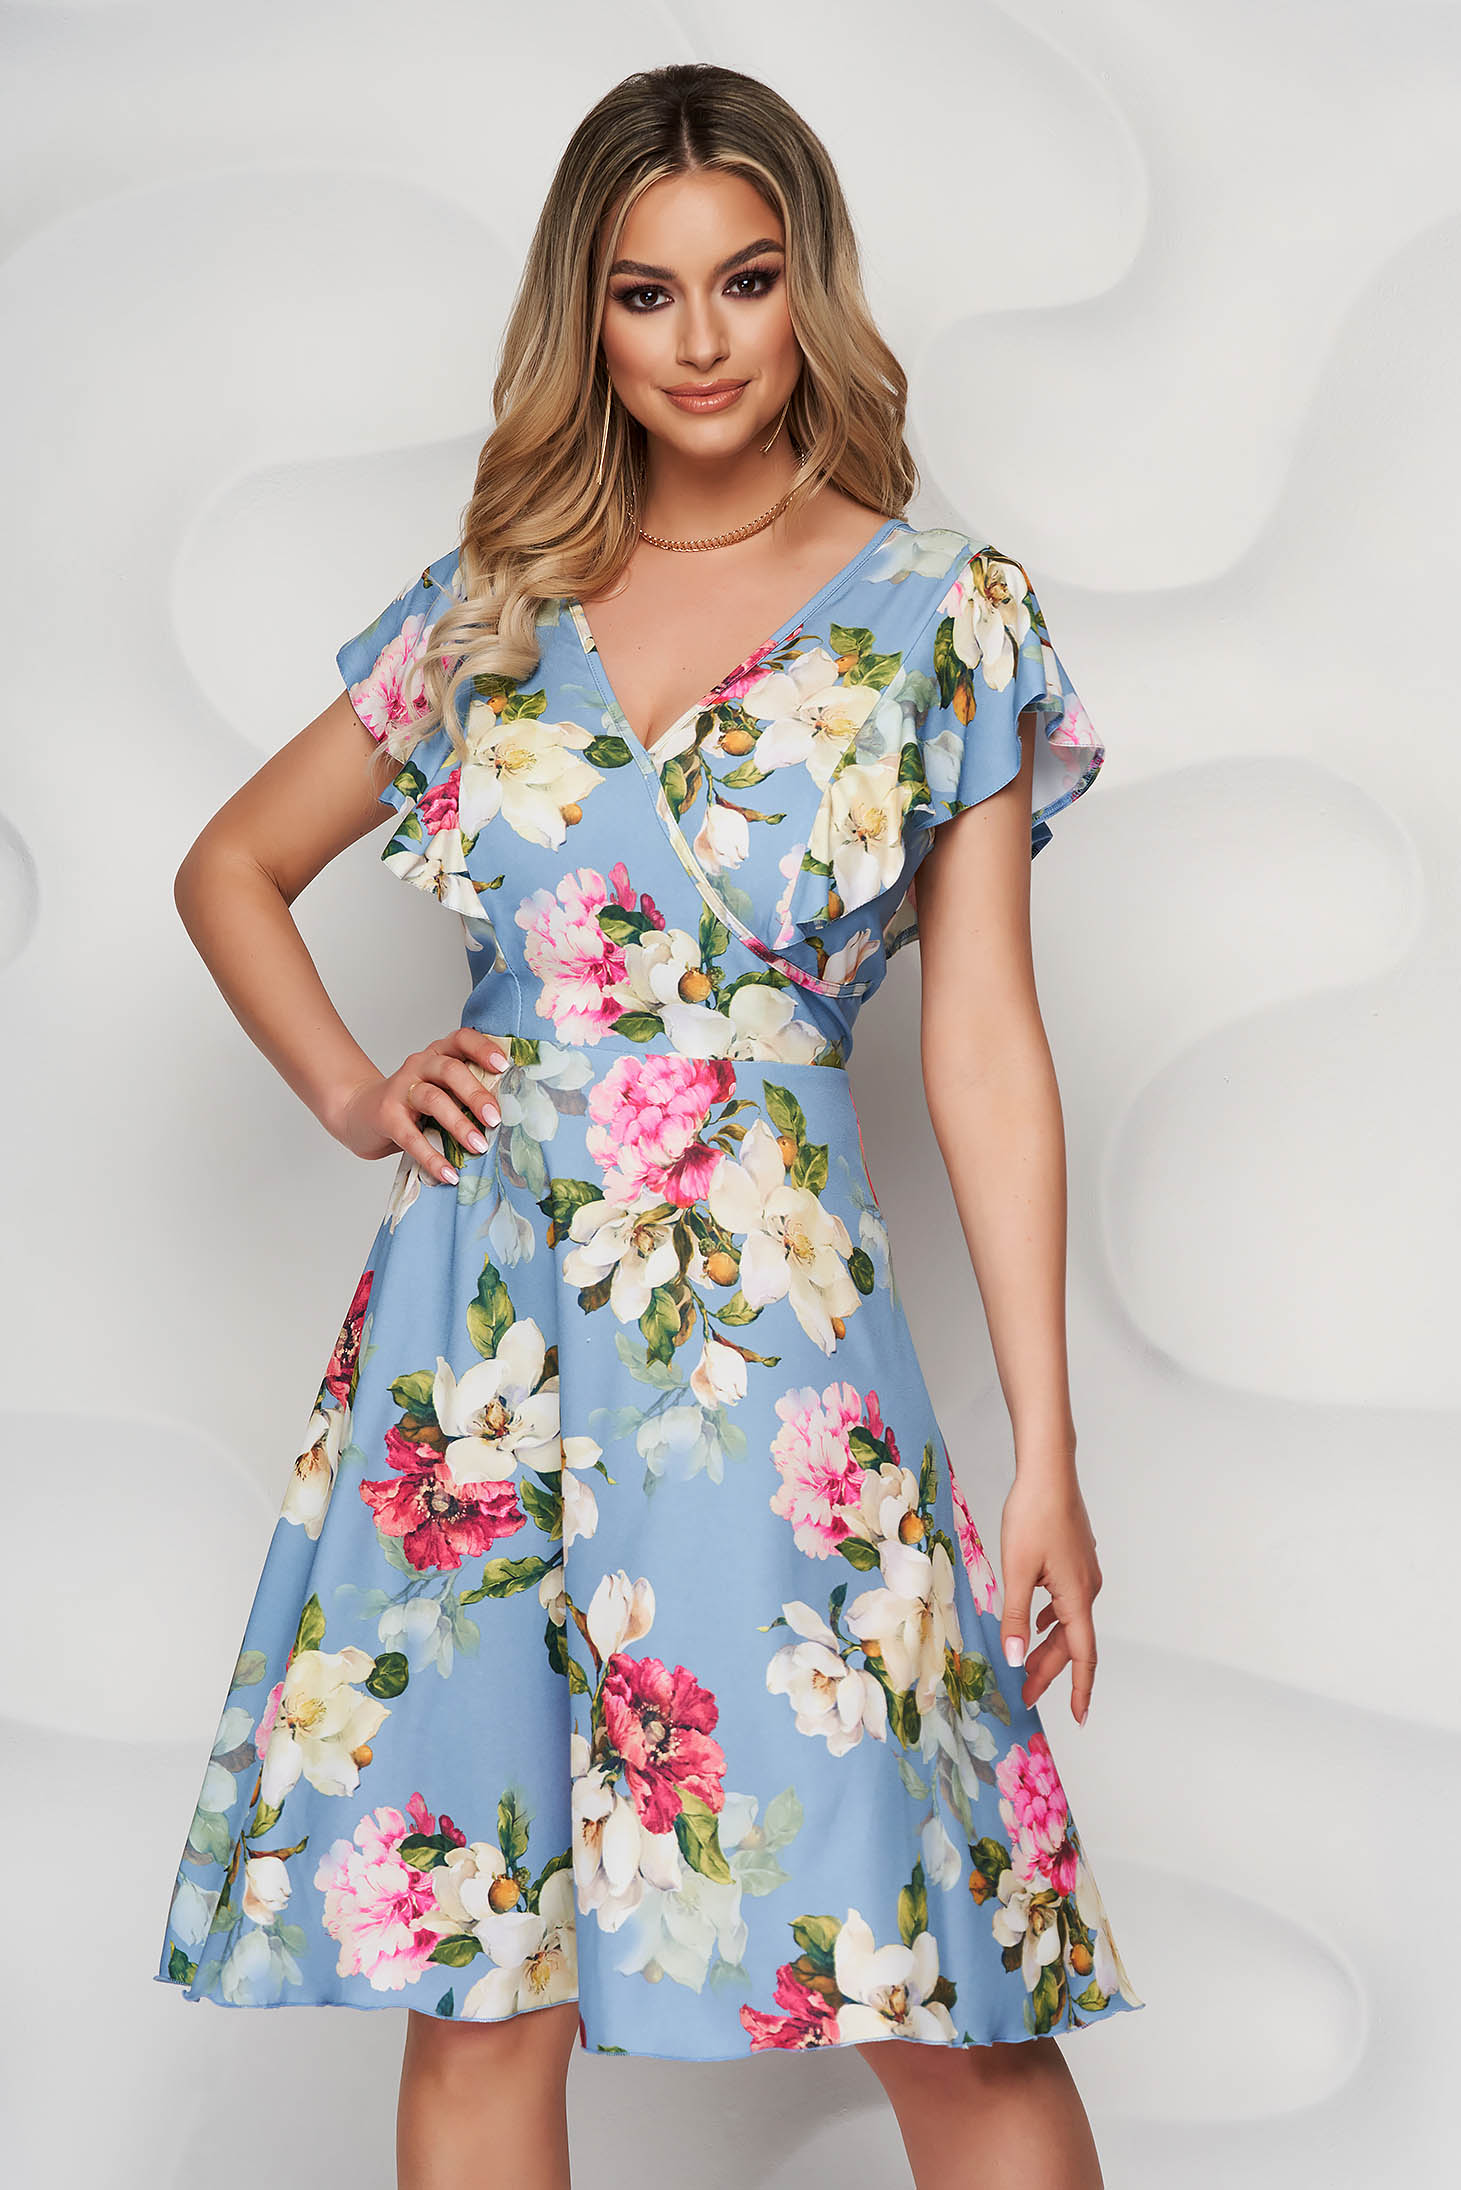 Lightblue dress with floral print cloche wrap over front with ruffle details